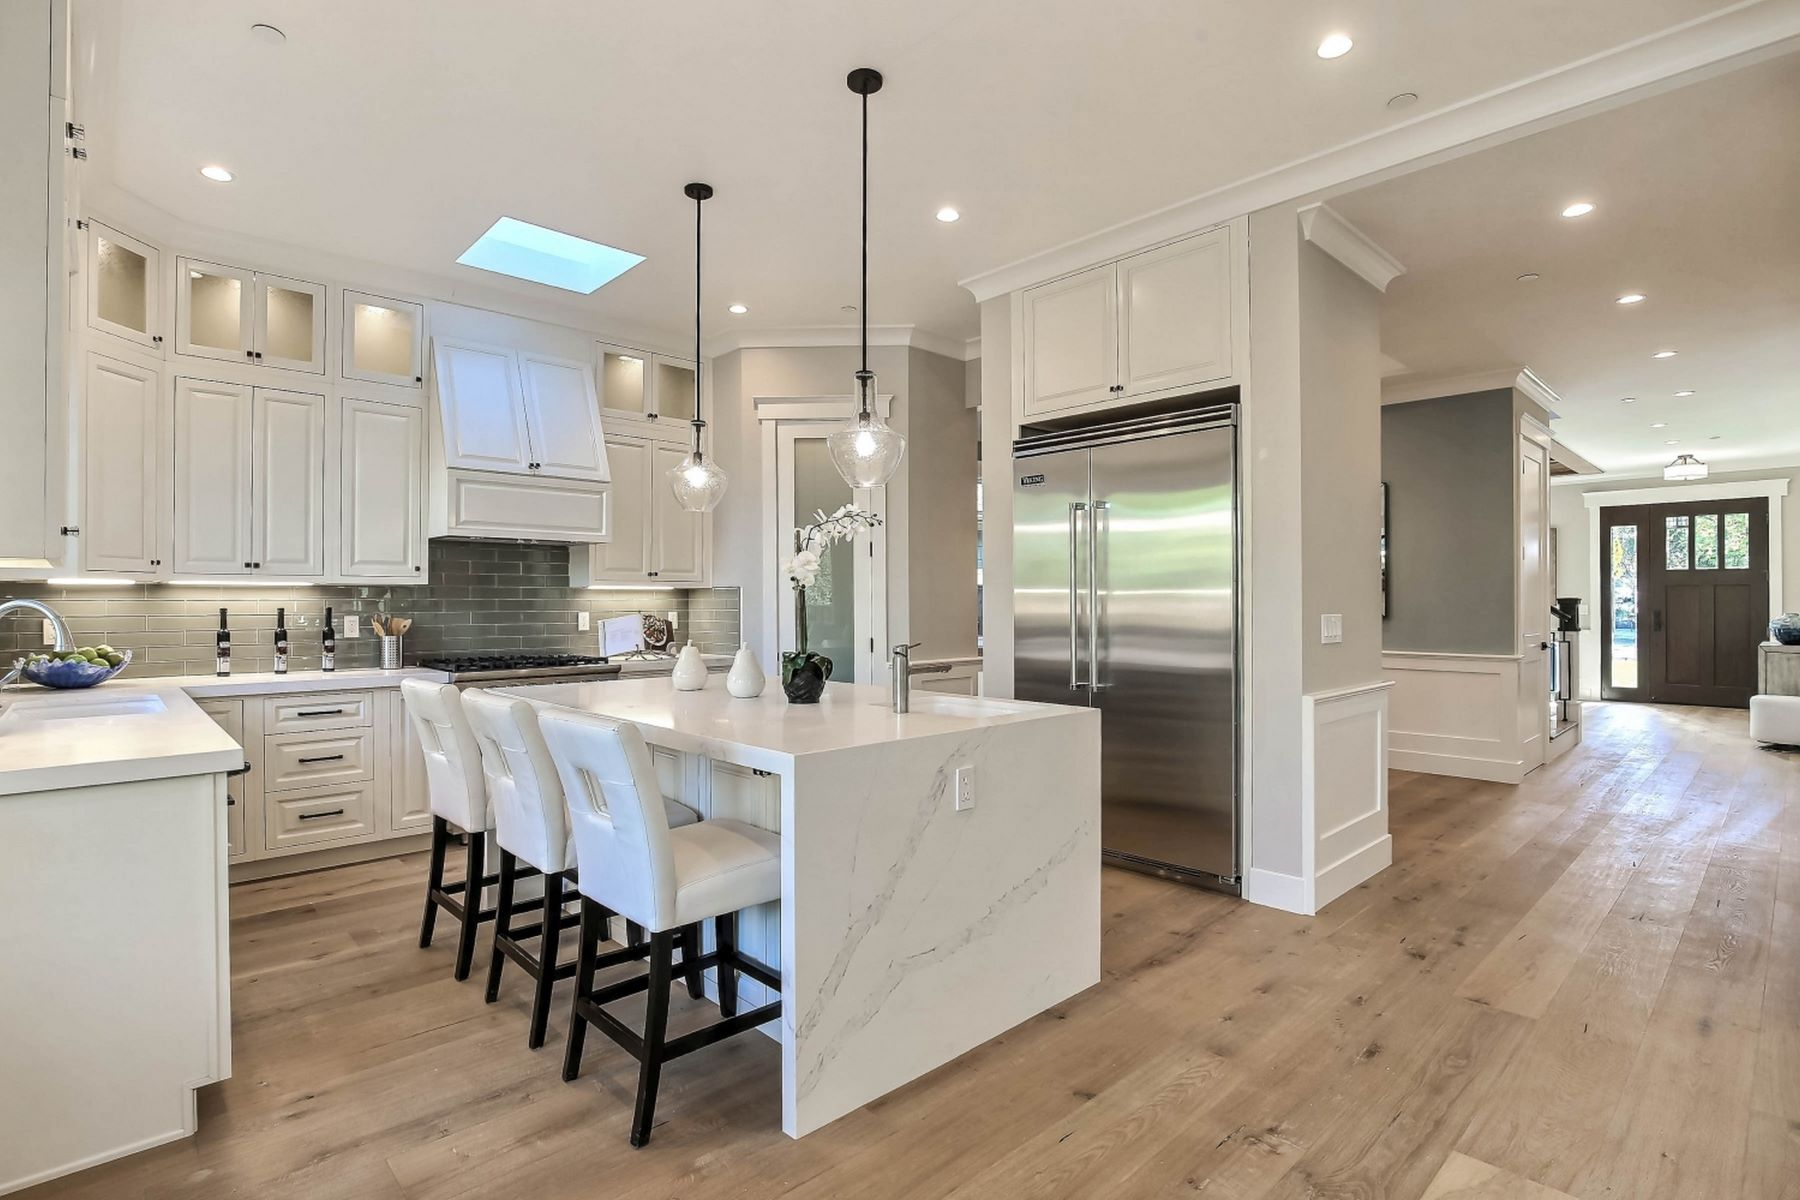 Additional photo for property listing at Sophisticated, New West Menlo Park Home 1180 Cloud Avenue Menlo Park, California 94025 United States